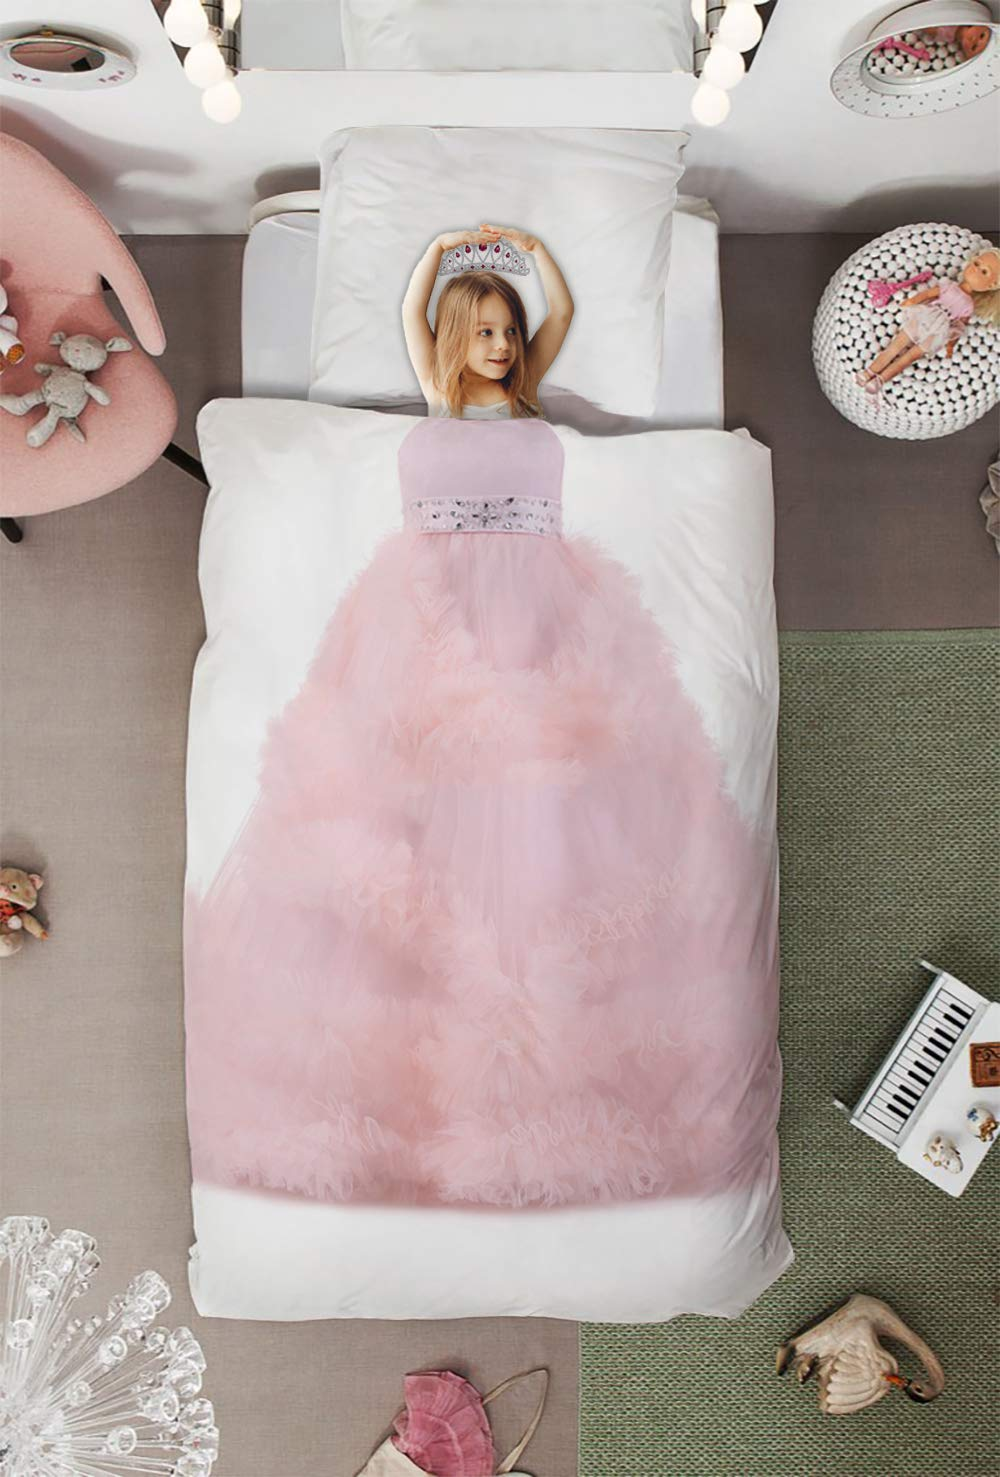 Homey Room 2 Piece Bedding Sets for Boys Girls Imaginary Cosplay Twin Size, Pink Themed Princess Dress Art Print, Soft Quilt Cover Set with Duvet Cover Pillow Case for Kids Bedroom Decor Decor